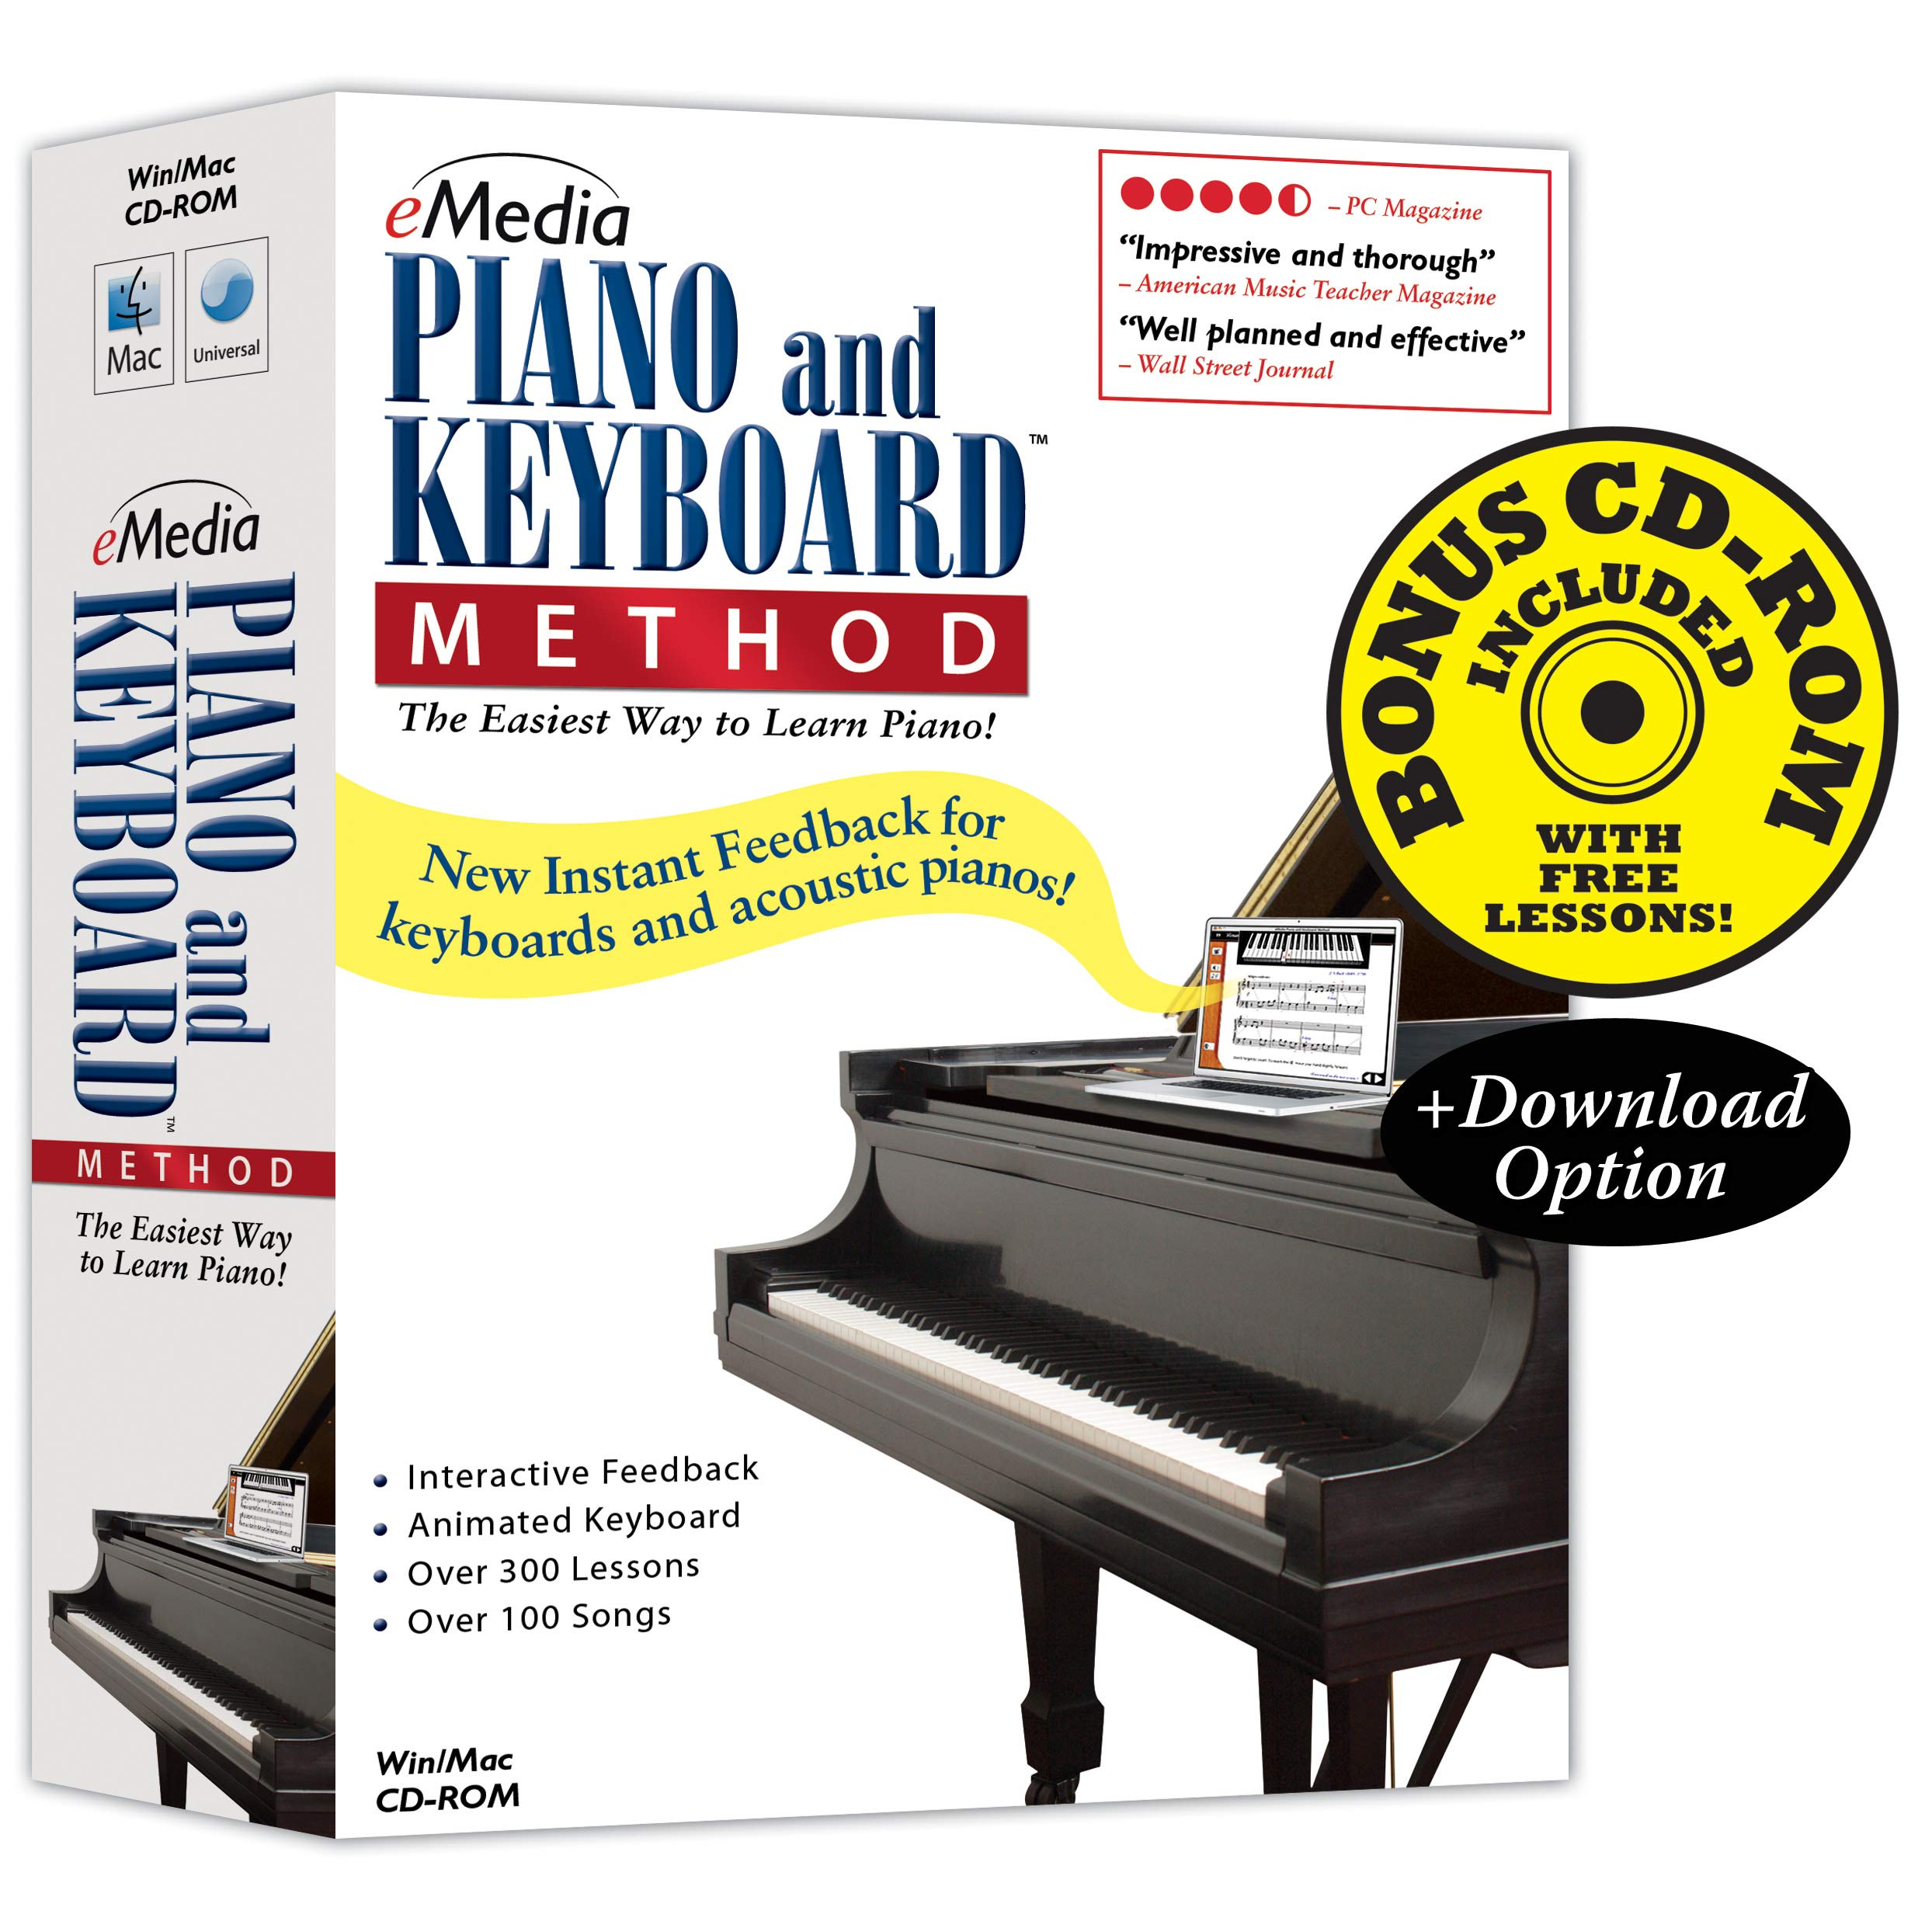 eMedia Piano and Keyboard Method v3 - Amazon Exclusive Edition with 150+ Additional Lessons